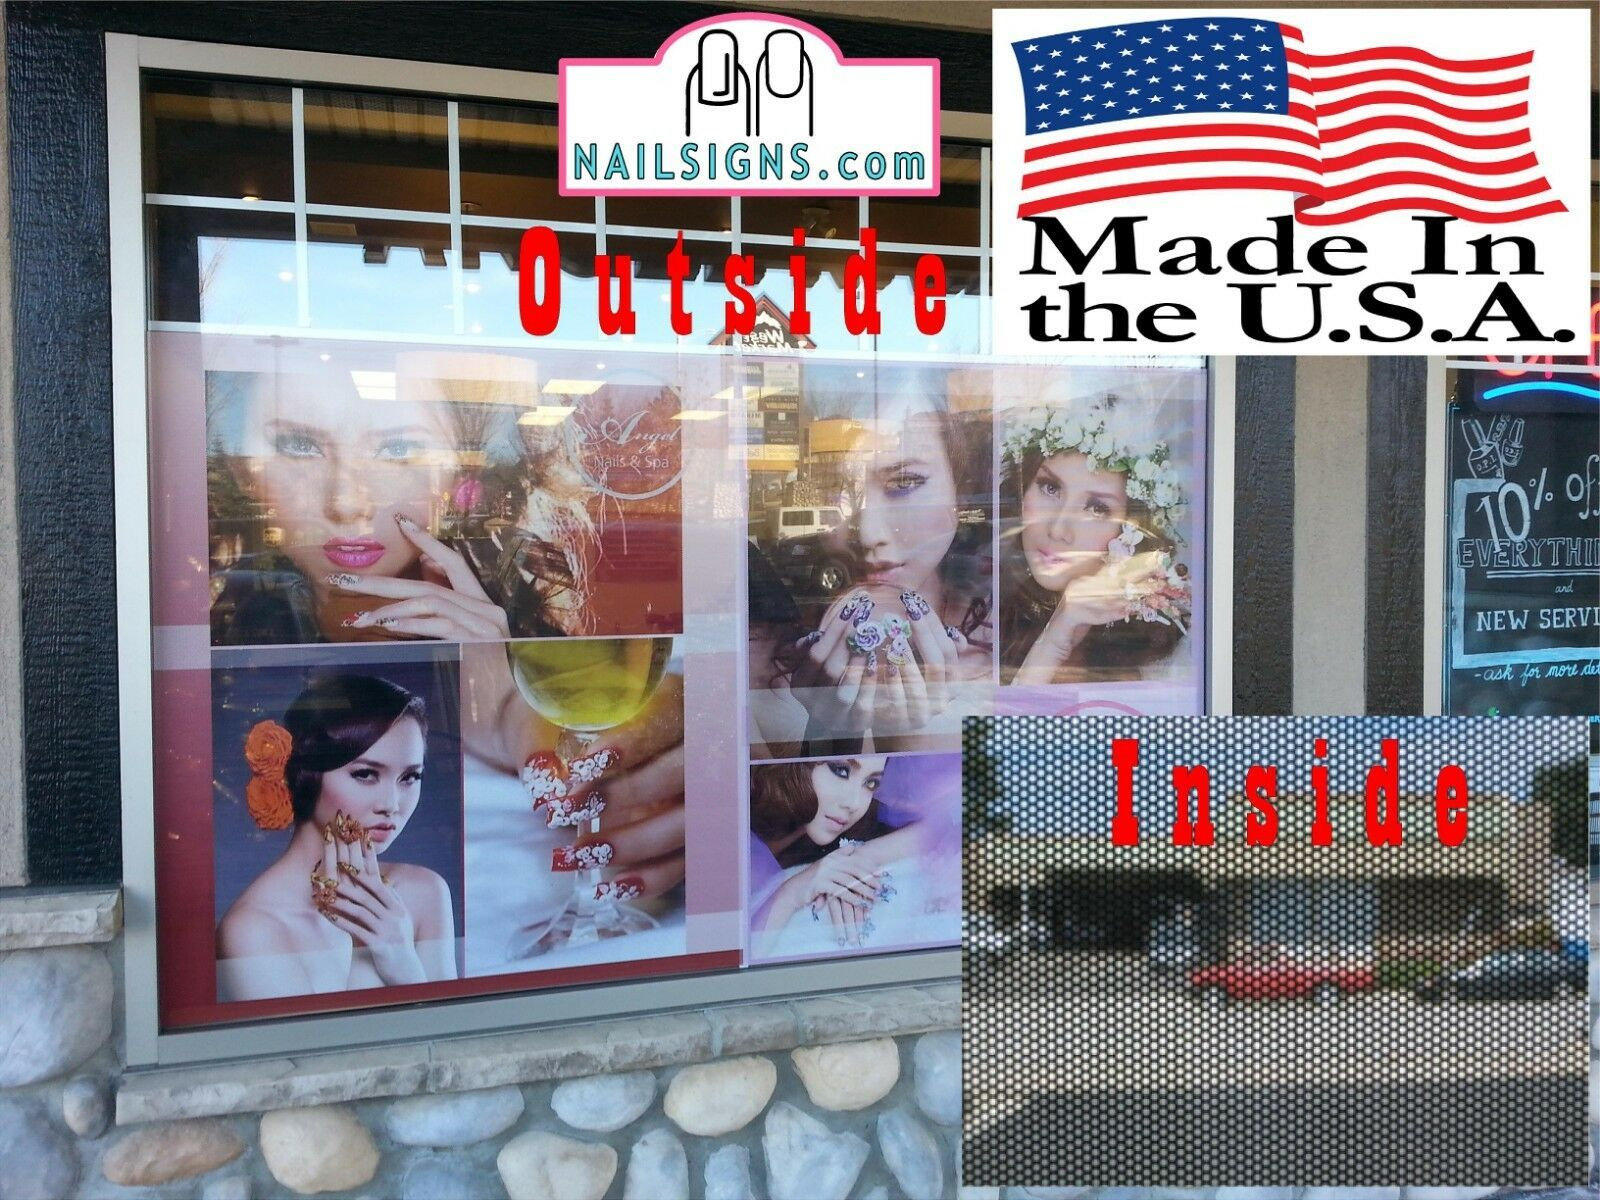 Solar VI Perforated 70/30 See Through Window Poster Manicure Nail Salon Vertical image 2